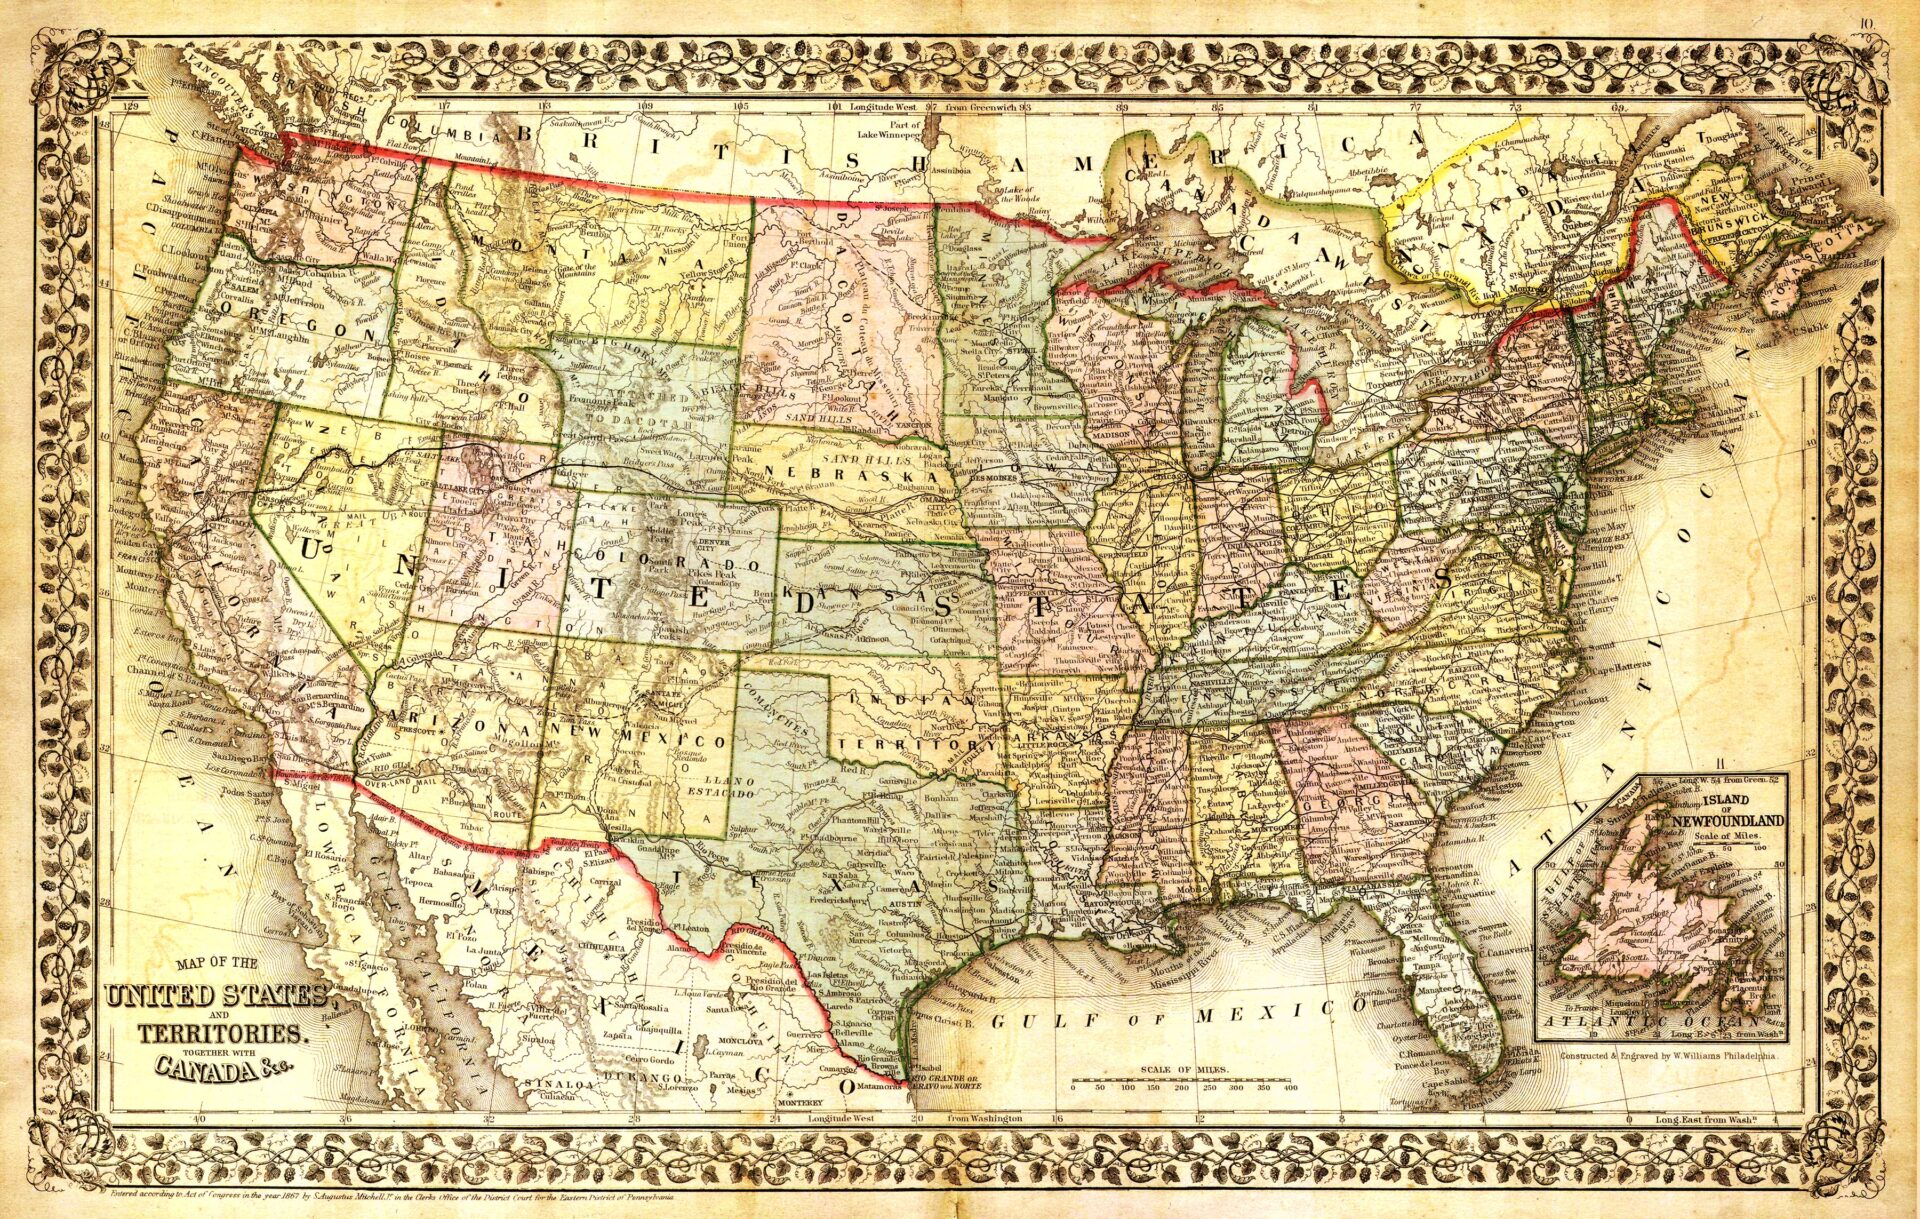 usa-map-atlas-history-middle-ages-north-america-1053657-pxhere.com